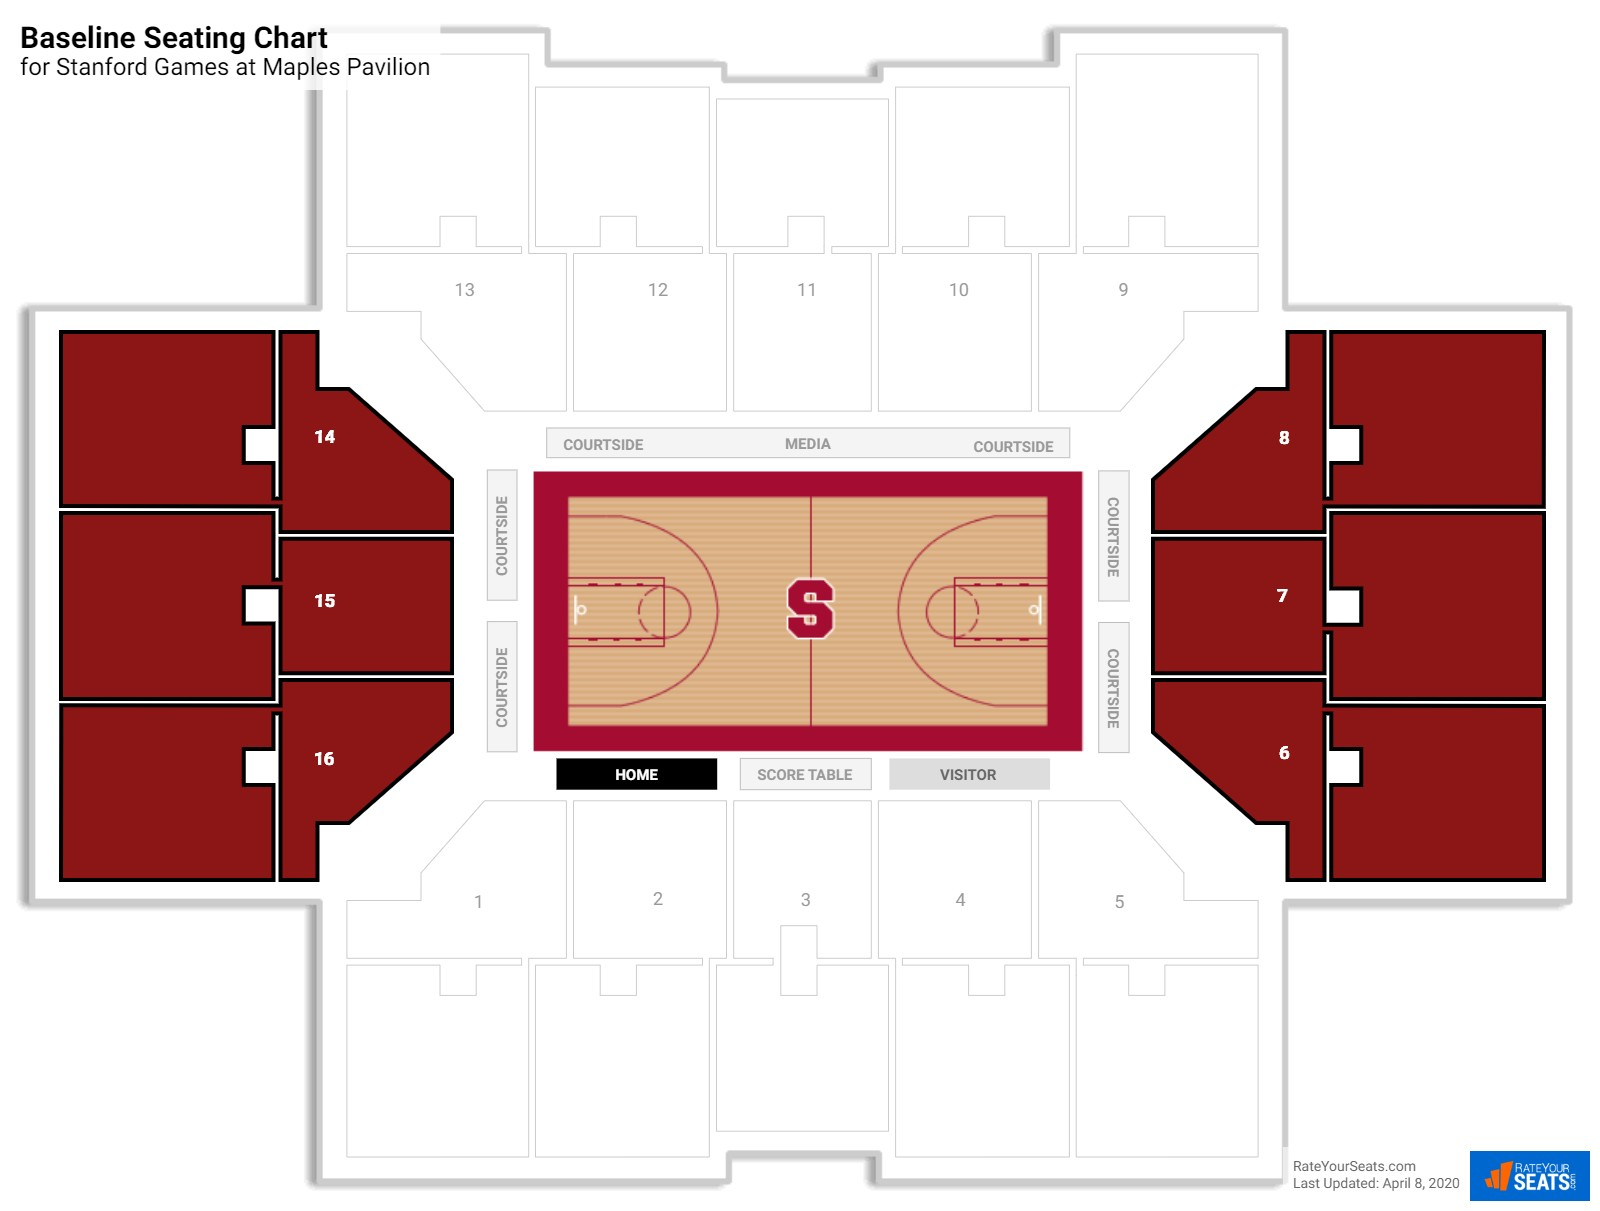 Maples Pavilion (Stanford) Seating Guide - RateYourSeats.com